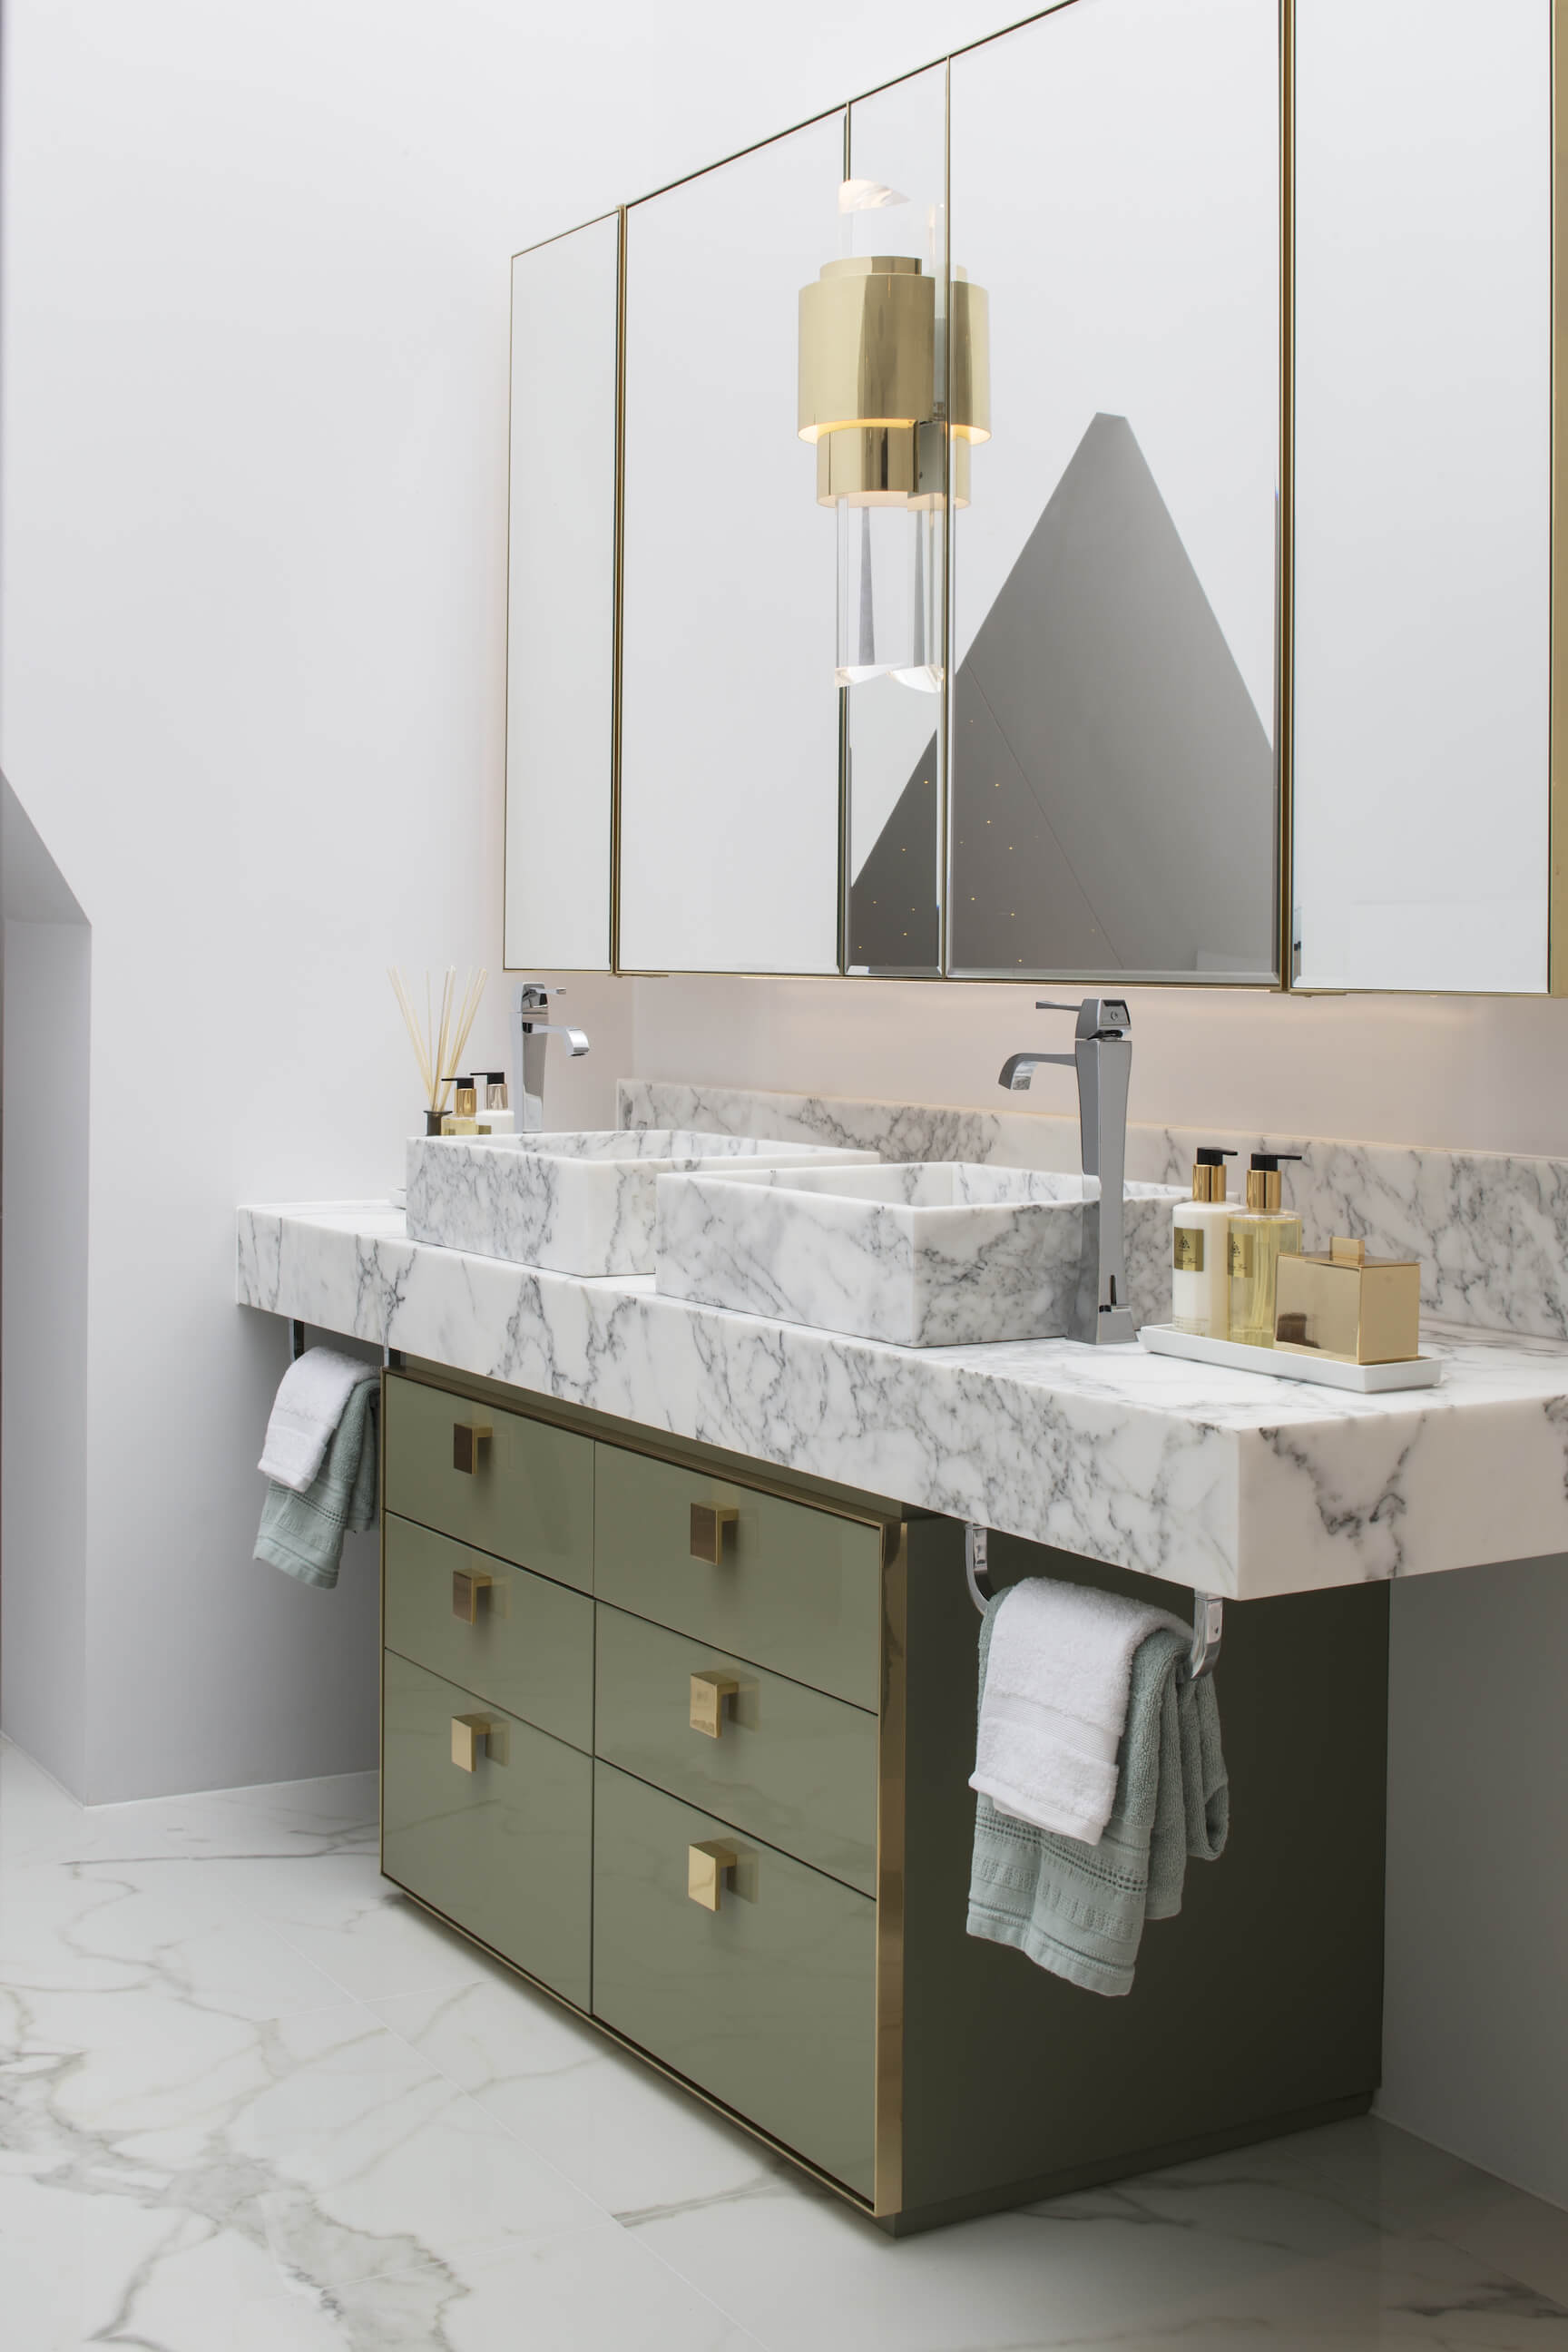 The lavish vanity with marble countertop and pair of vessel sinks stands over rich green cabinetry with gold hardware.